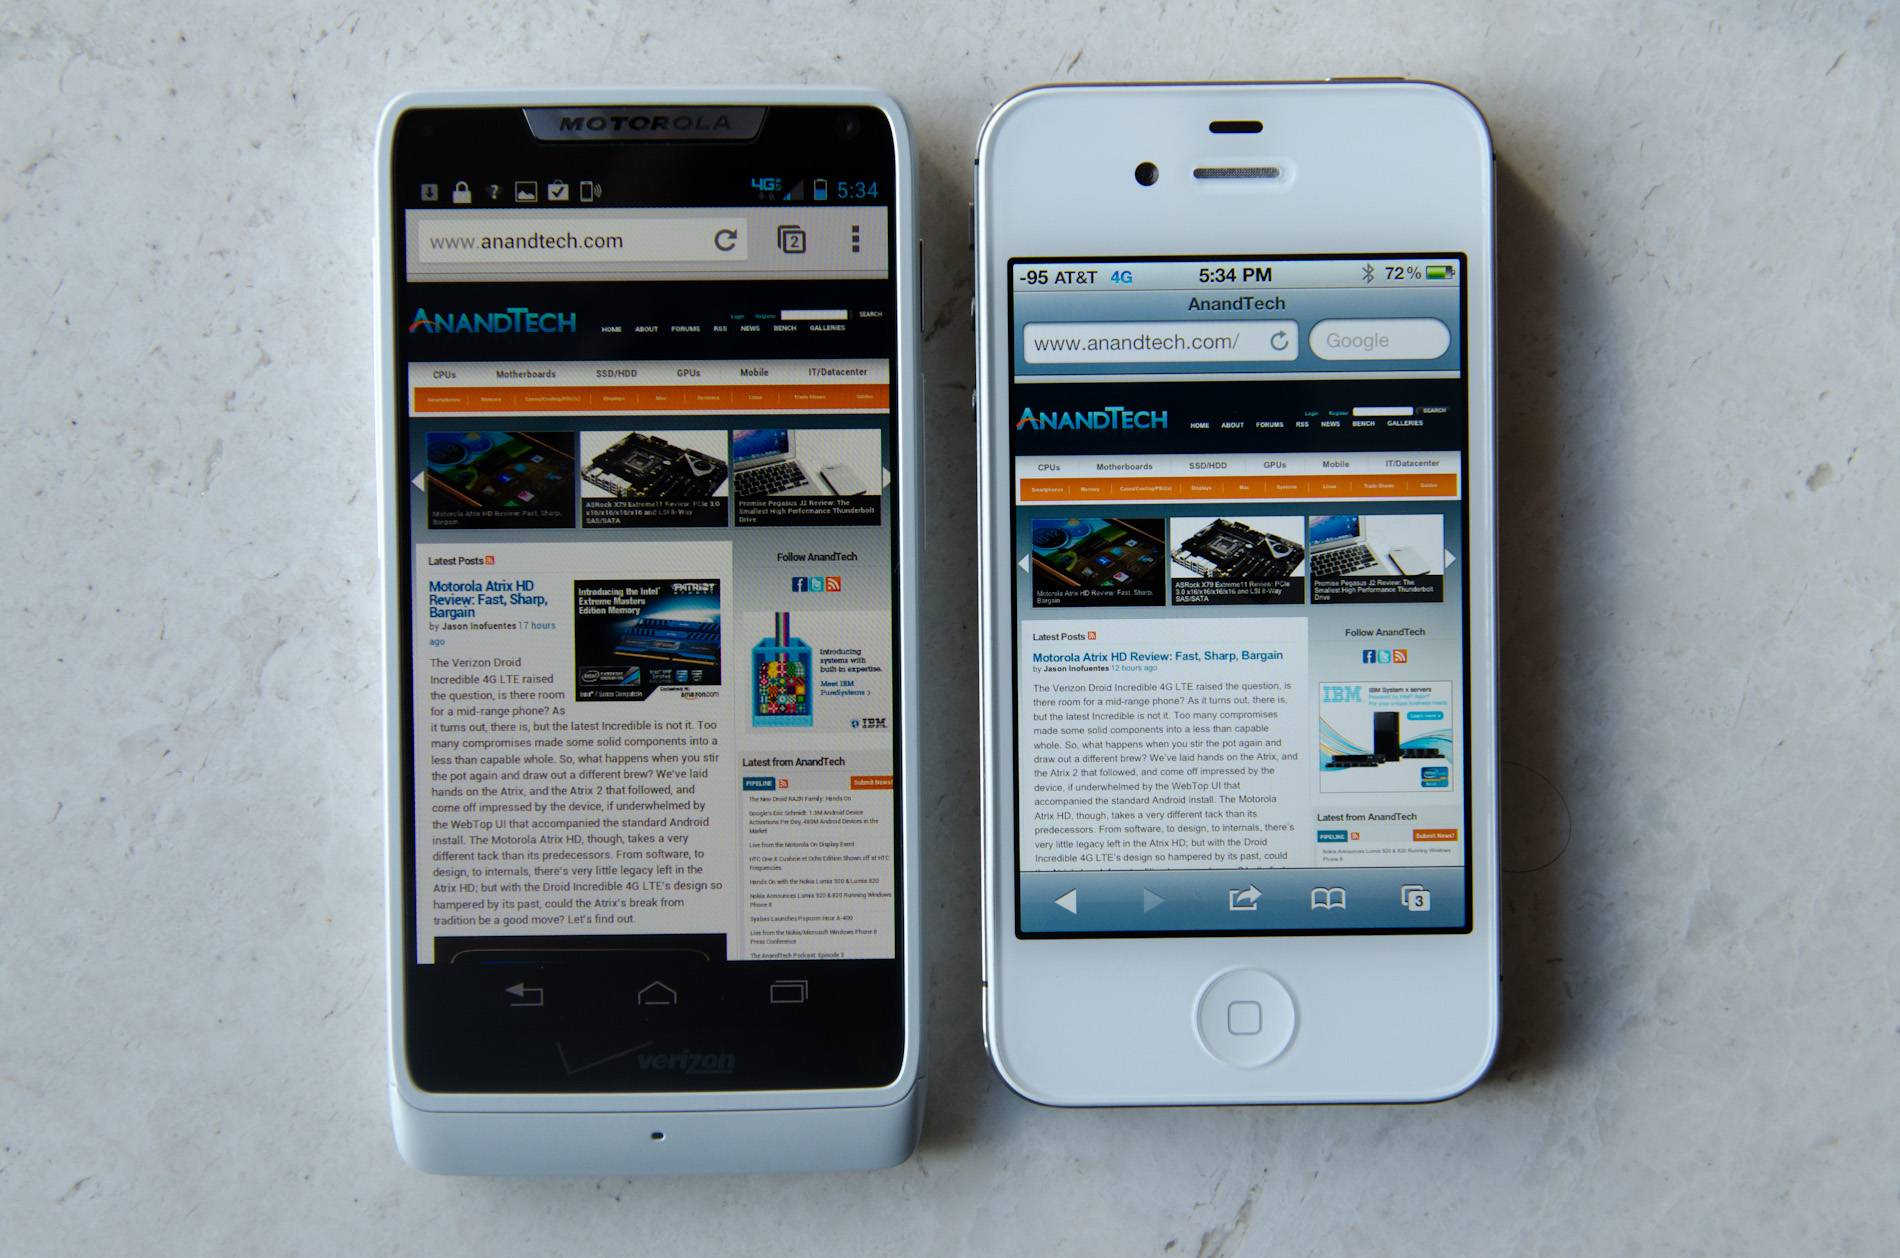 Motorola Droid Razr M VS. iPhone 4